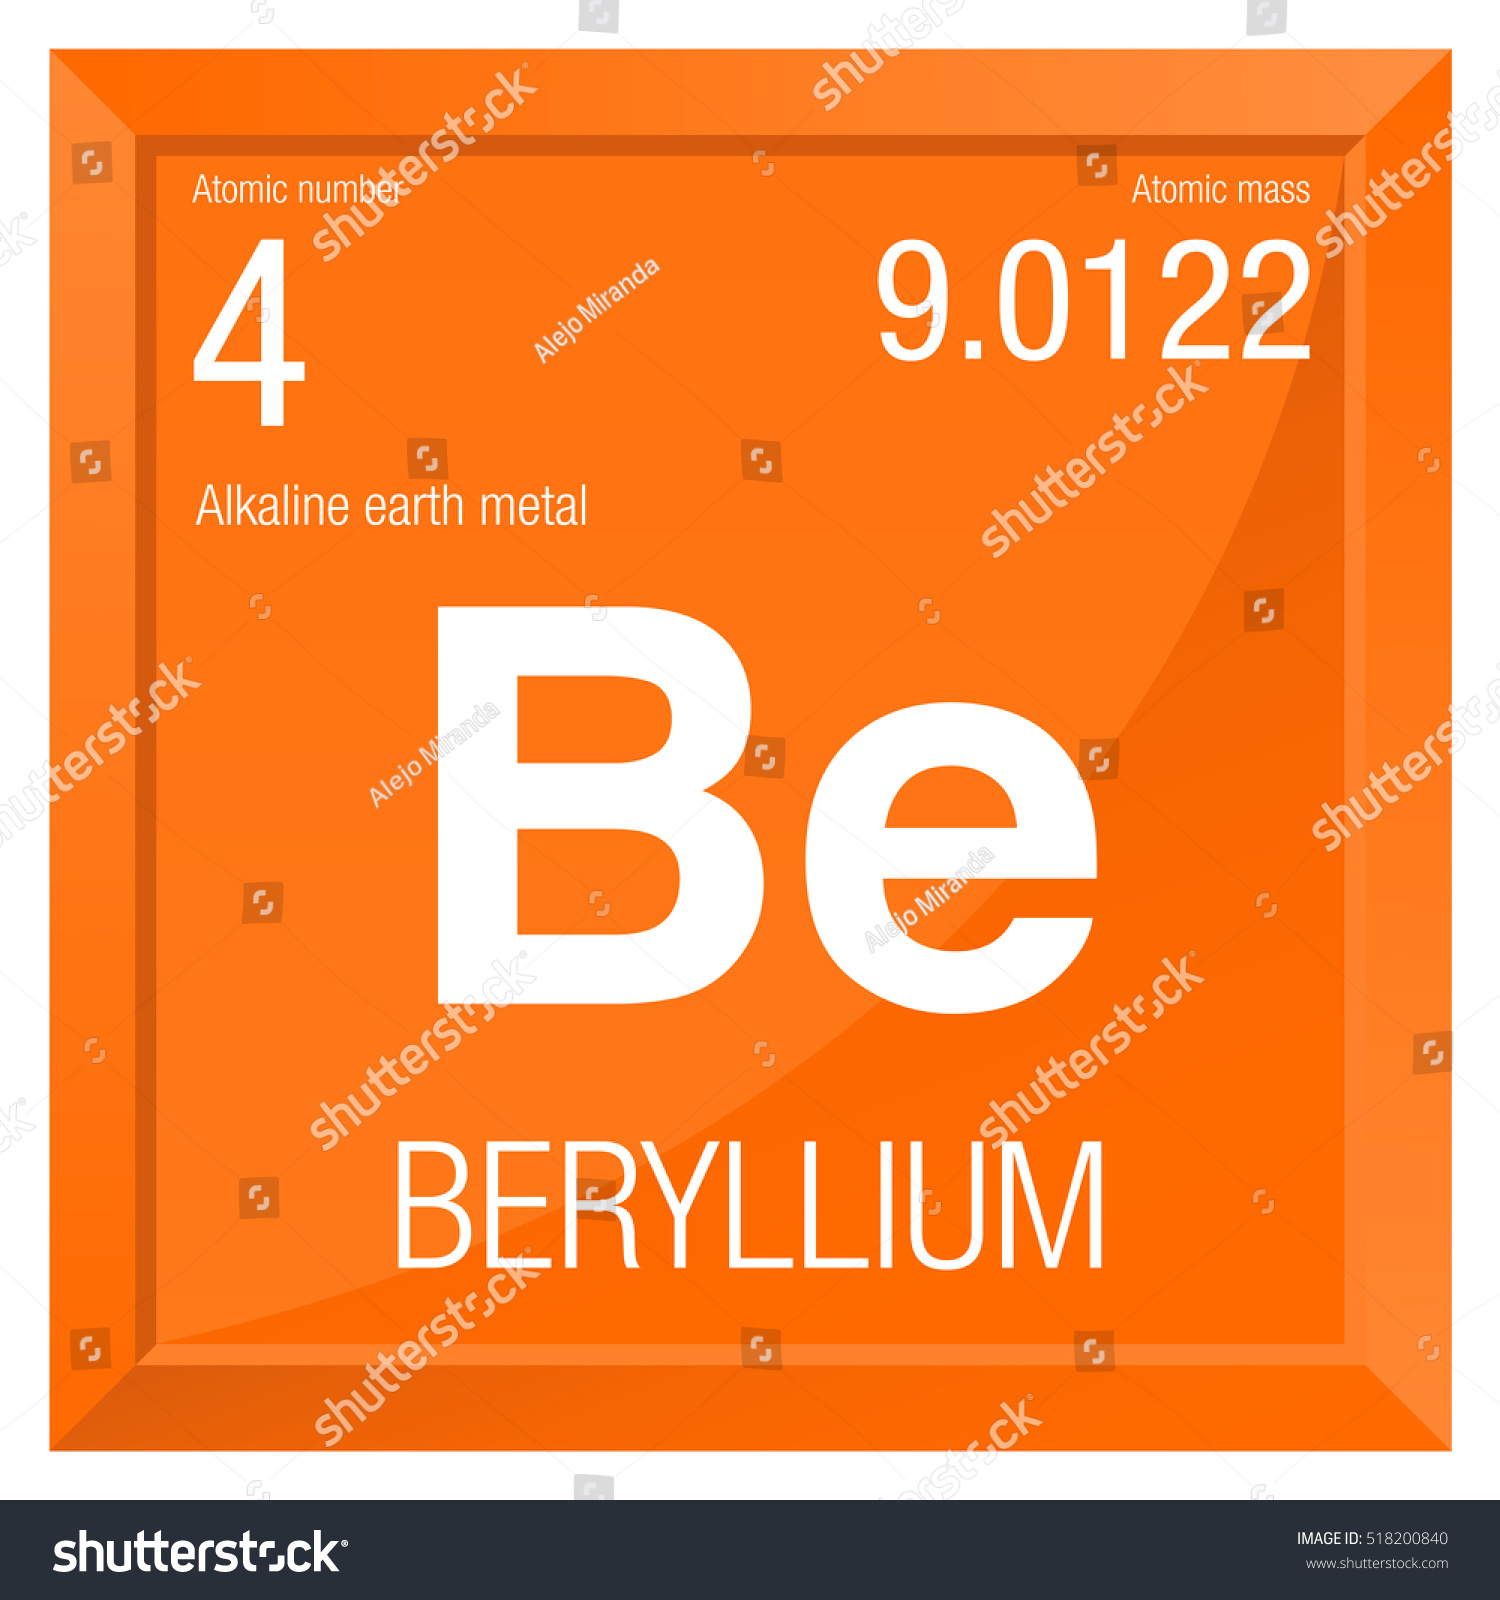 Mn symbol periodic table choice image periodic table images beryllium symbol periodic table choice image periodic table images beryllium symbol periodic table choice image periodic gamestrikefo Image collections